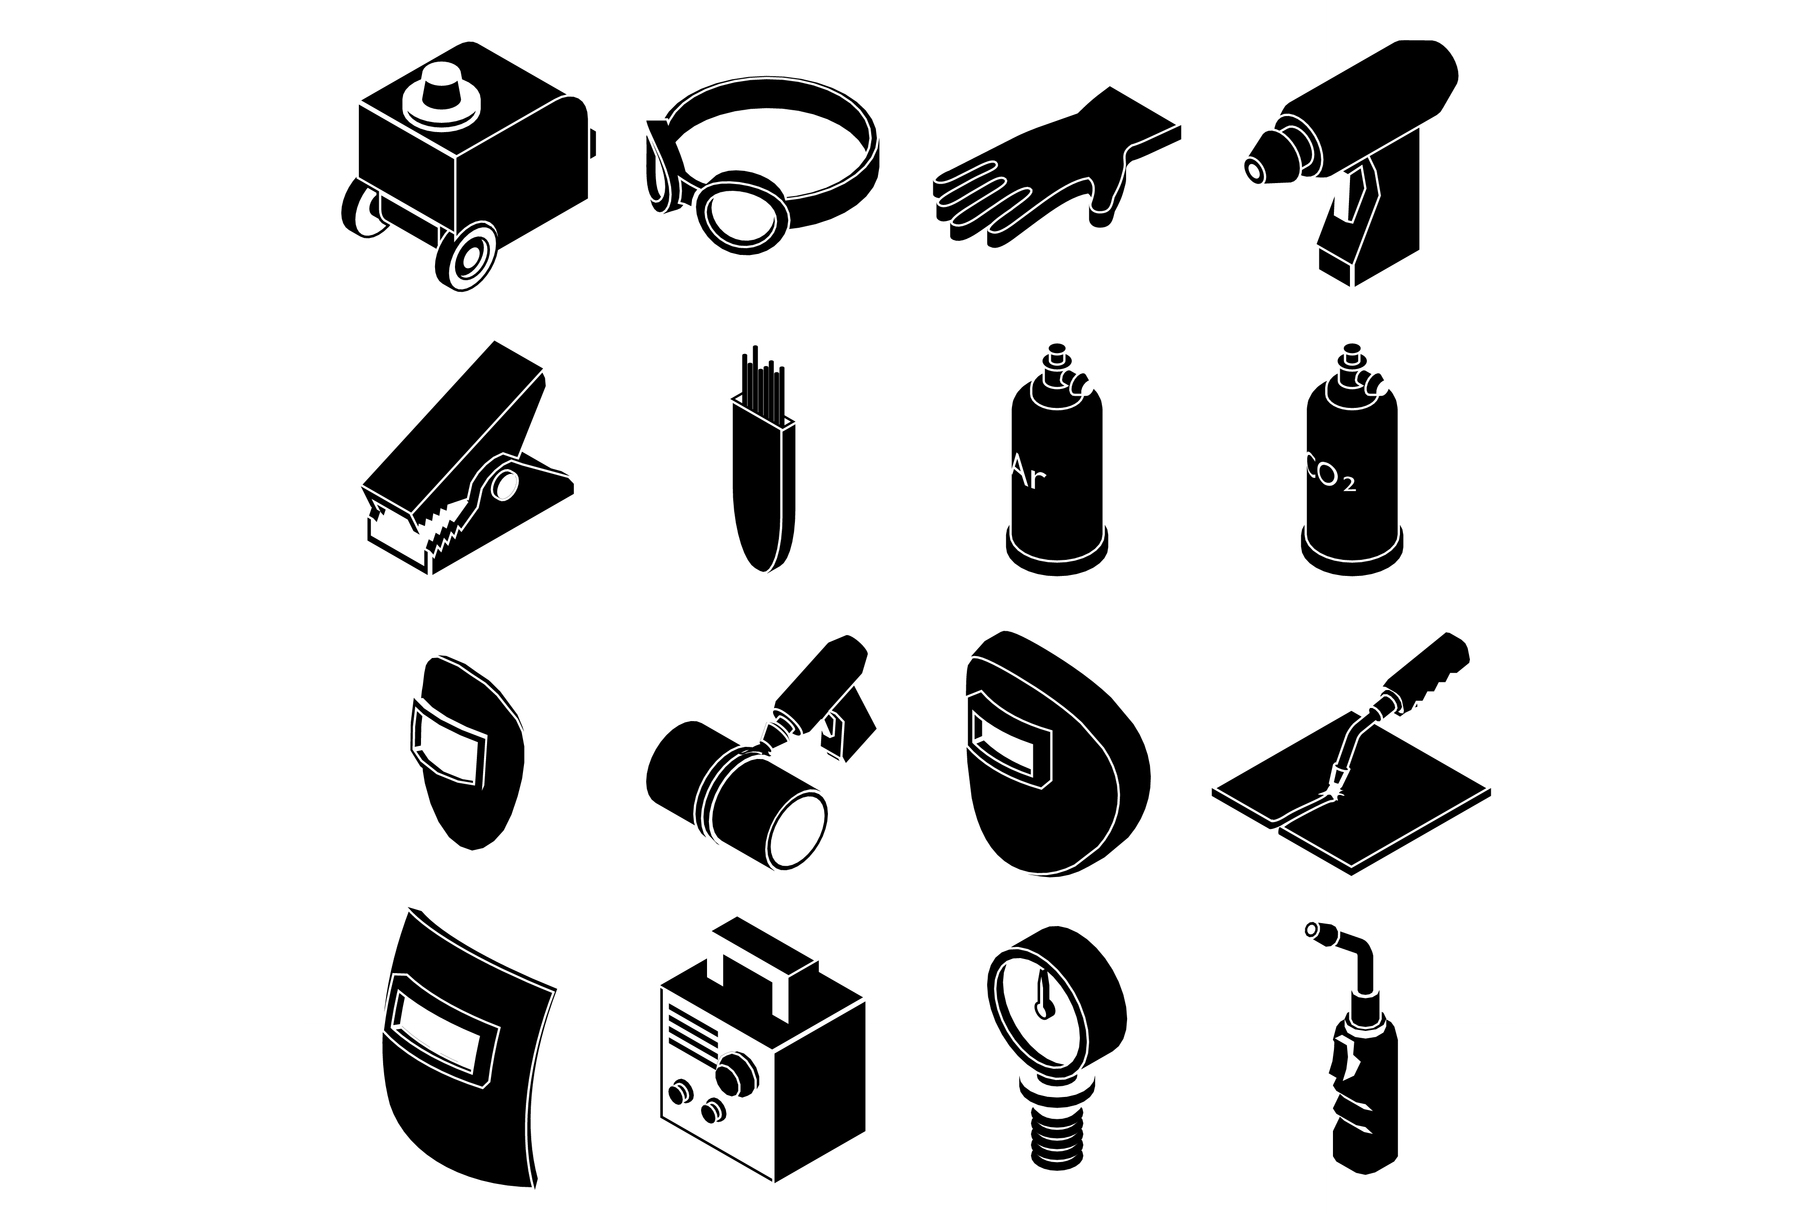 Welding tools icons set, simple style example image 1